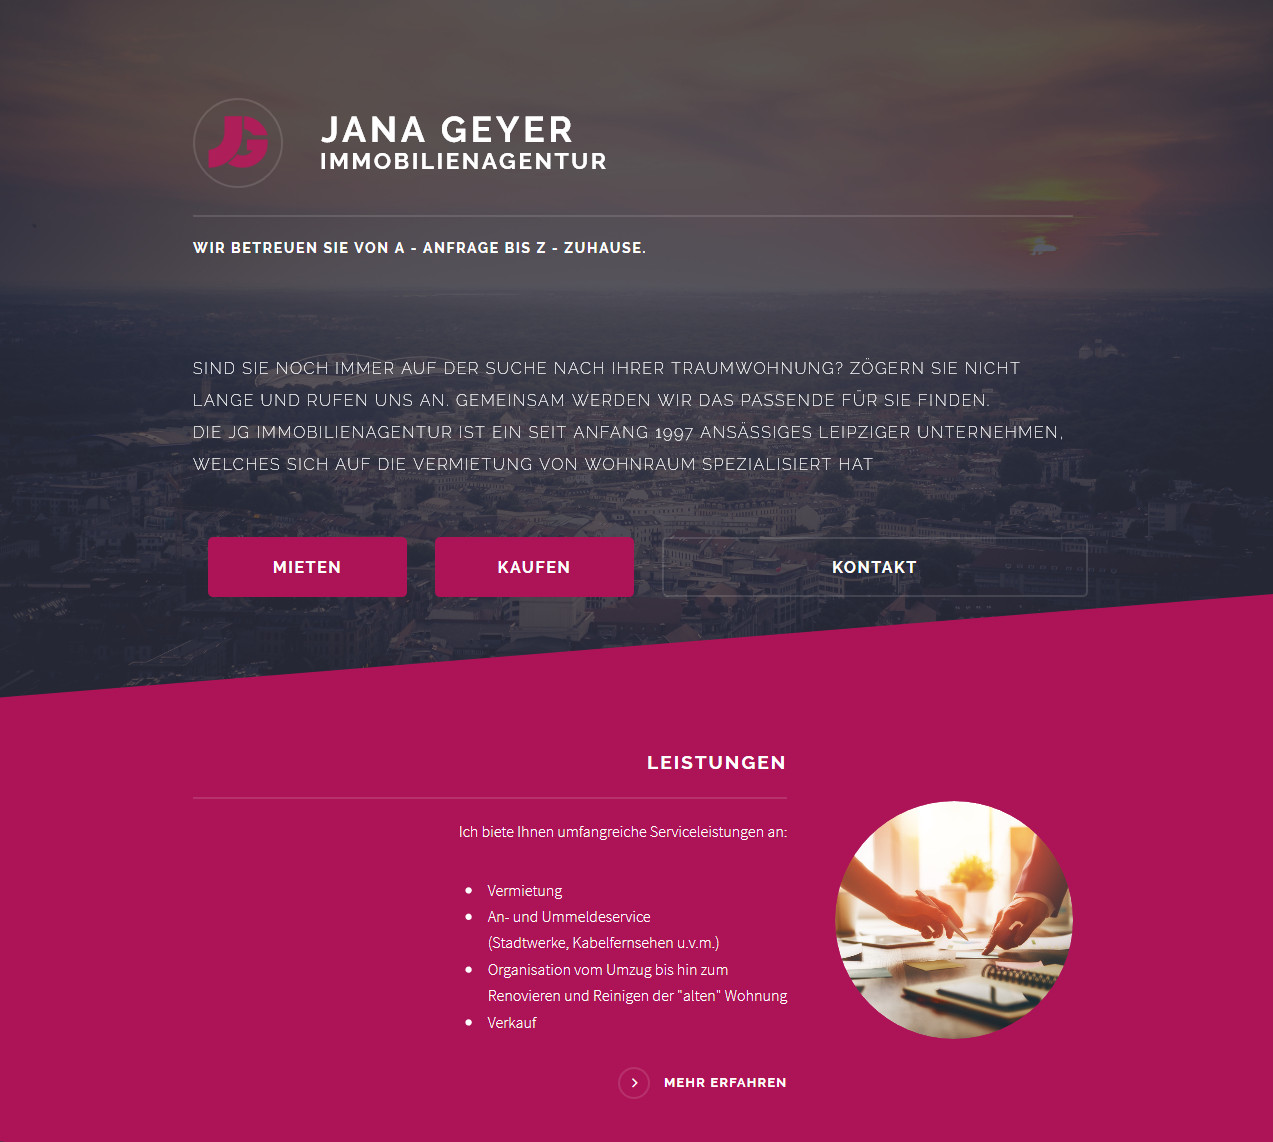 janageyer.de Relaunch